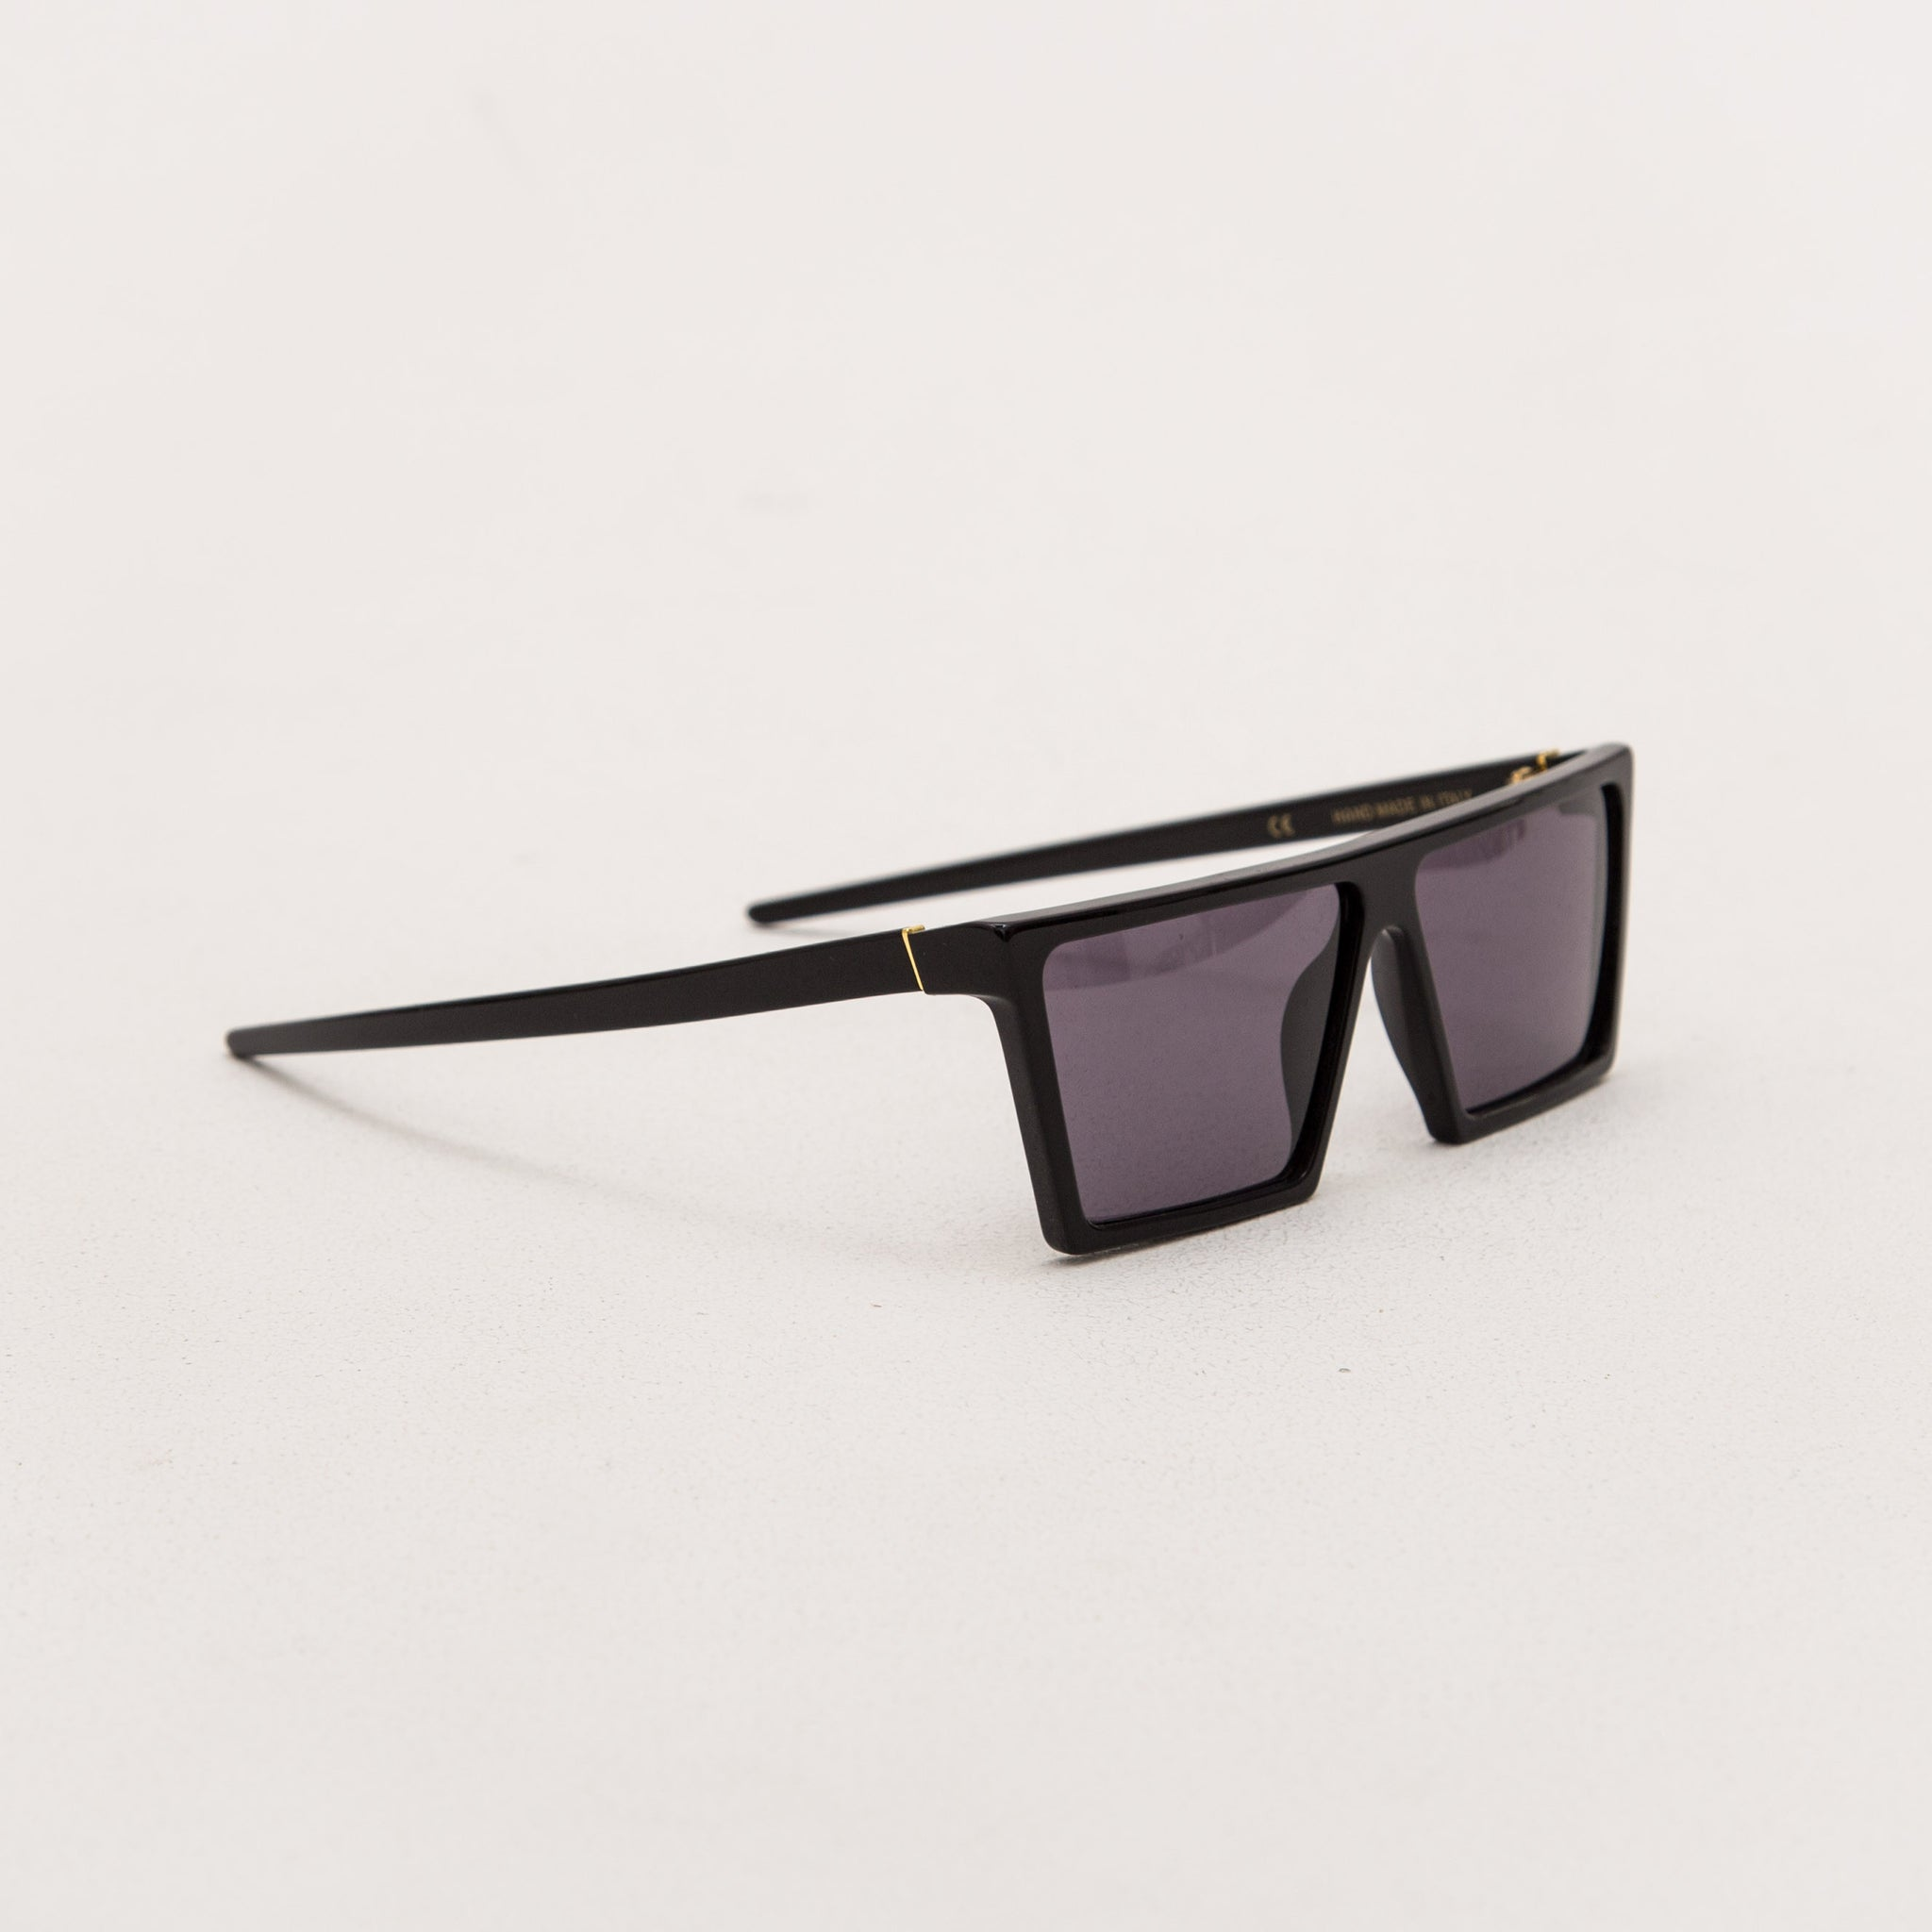 Super W Sunglasses - Black 298 | AStore